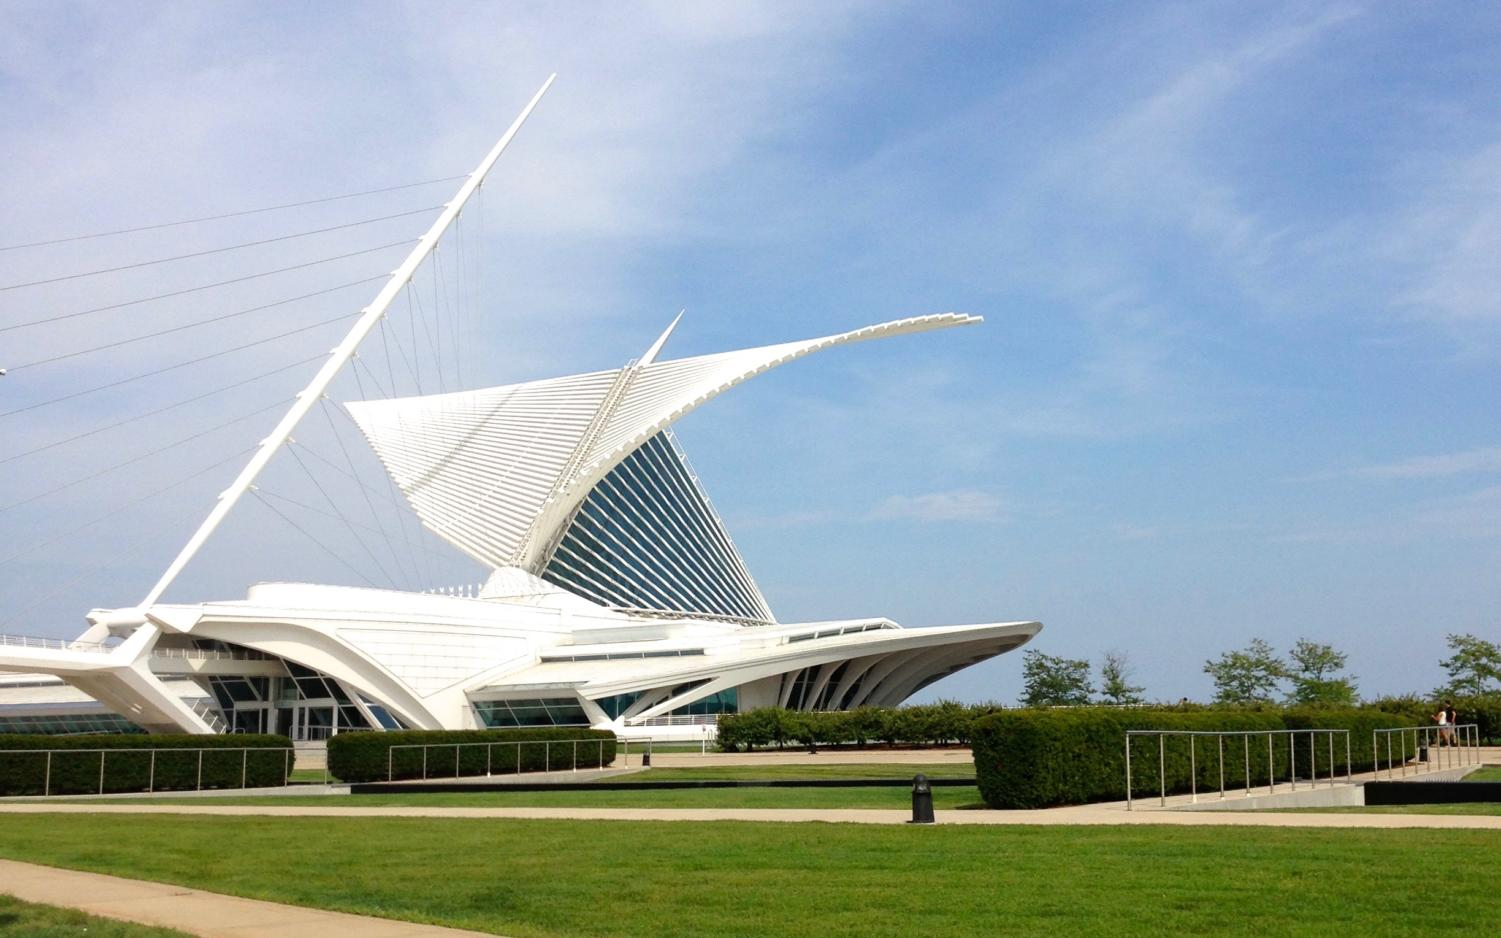 Image of the Milwaukee Art Museum, located in Milwaukee, Wisconsin